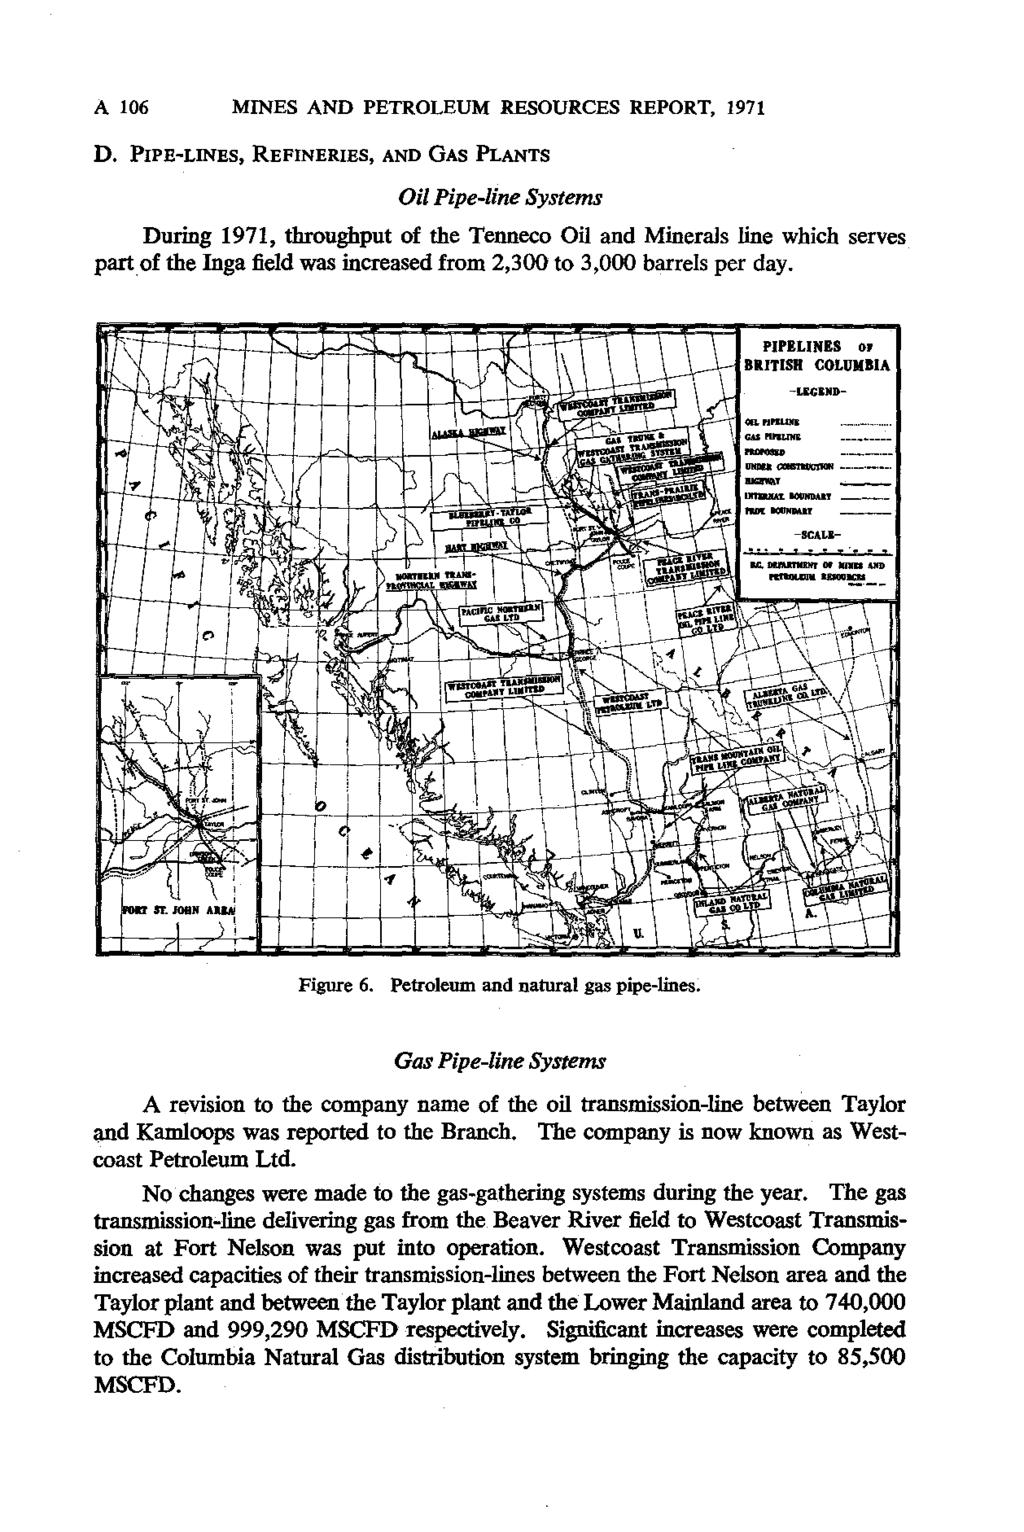 Minister Of Mines And Petroleum Resources Pdf Midland 1165 Diagram 18 19 805 A 106 Mnes Report 1971 D